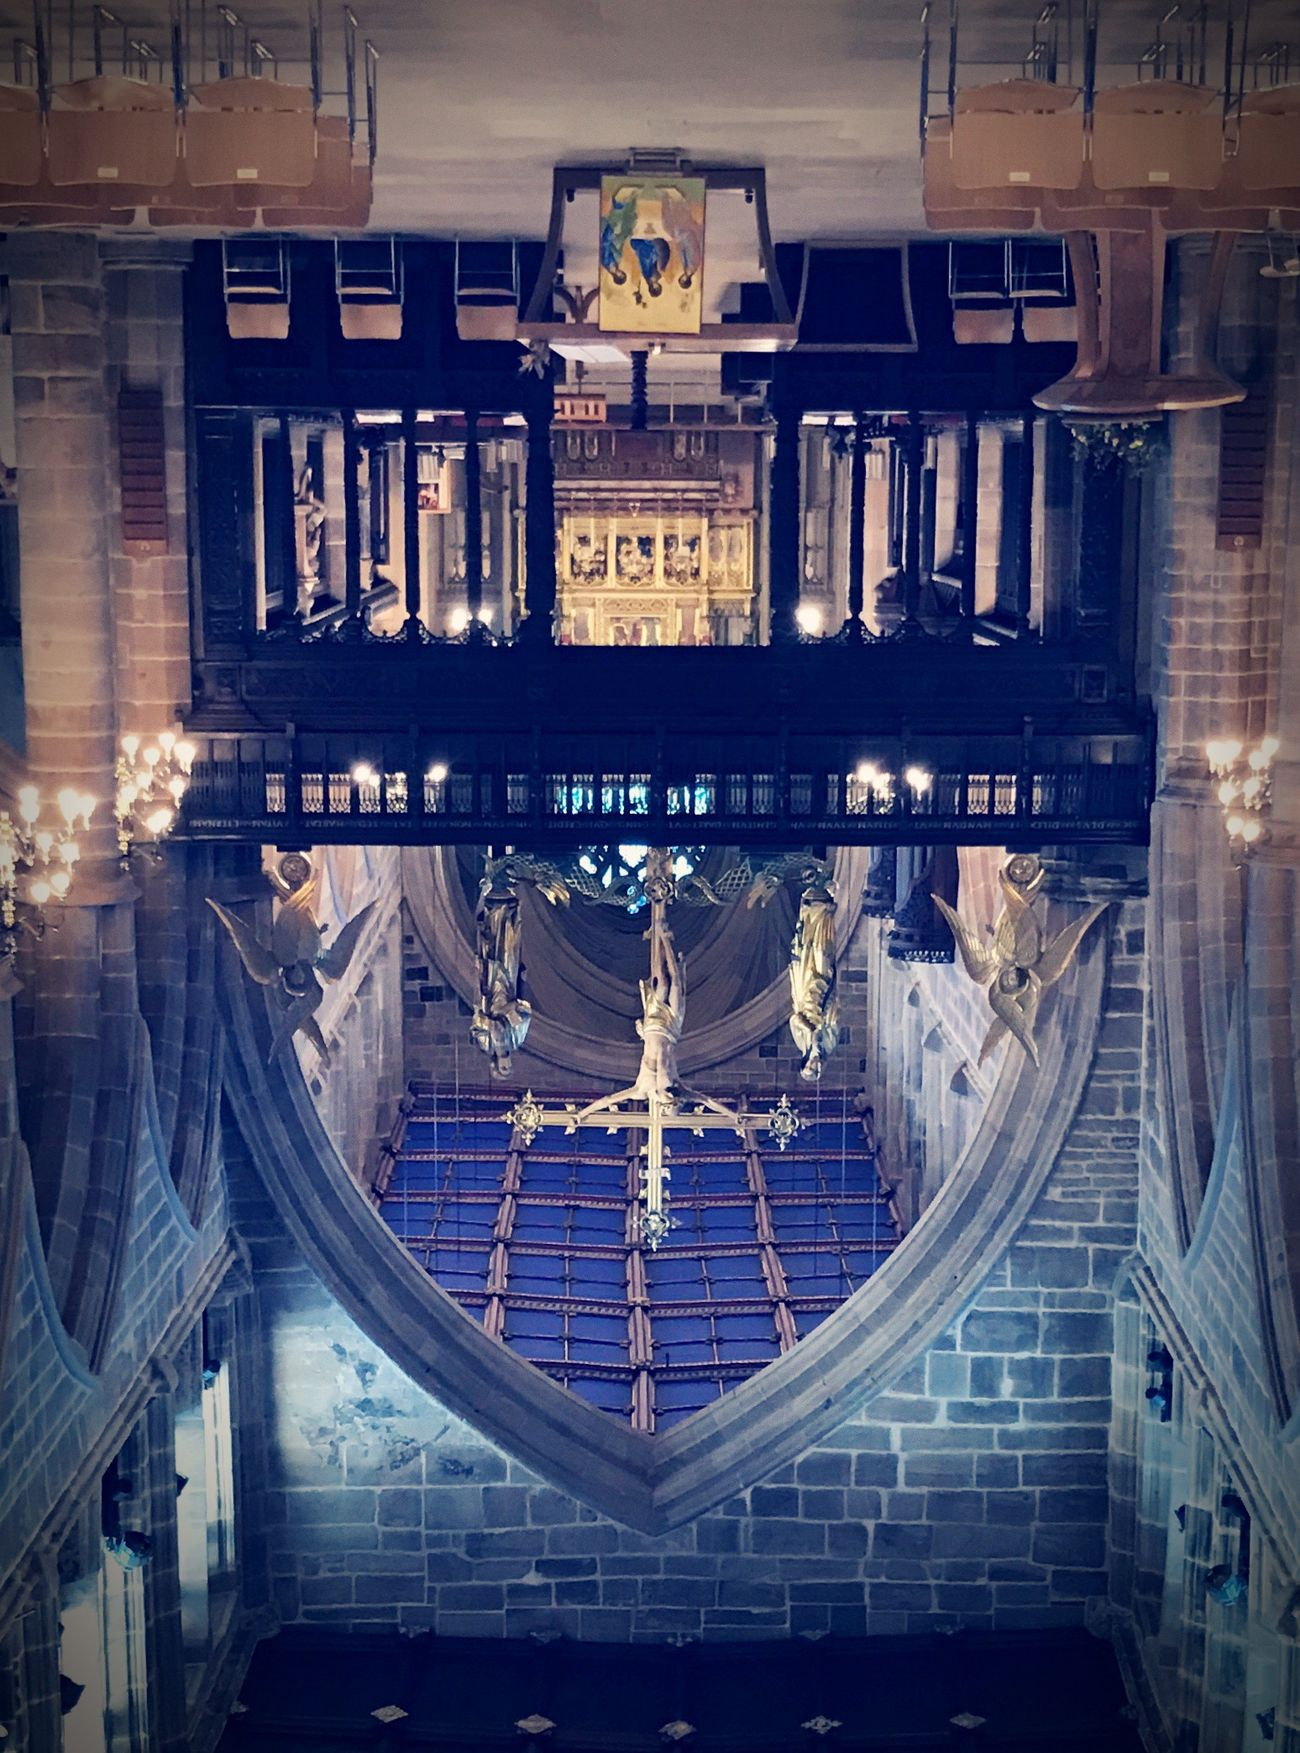 New angle... 💒 ✝️ Indoors  Travel Destinations Architecture No People Night Illuminated Day Architecture England The Past First Eyeem Photo History Inspiration Fortified Wall Built Structure Frontal Shot Upside Down Upsidedown UpsideDownShot Upsidedownphoto Resist